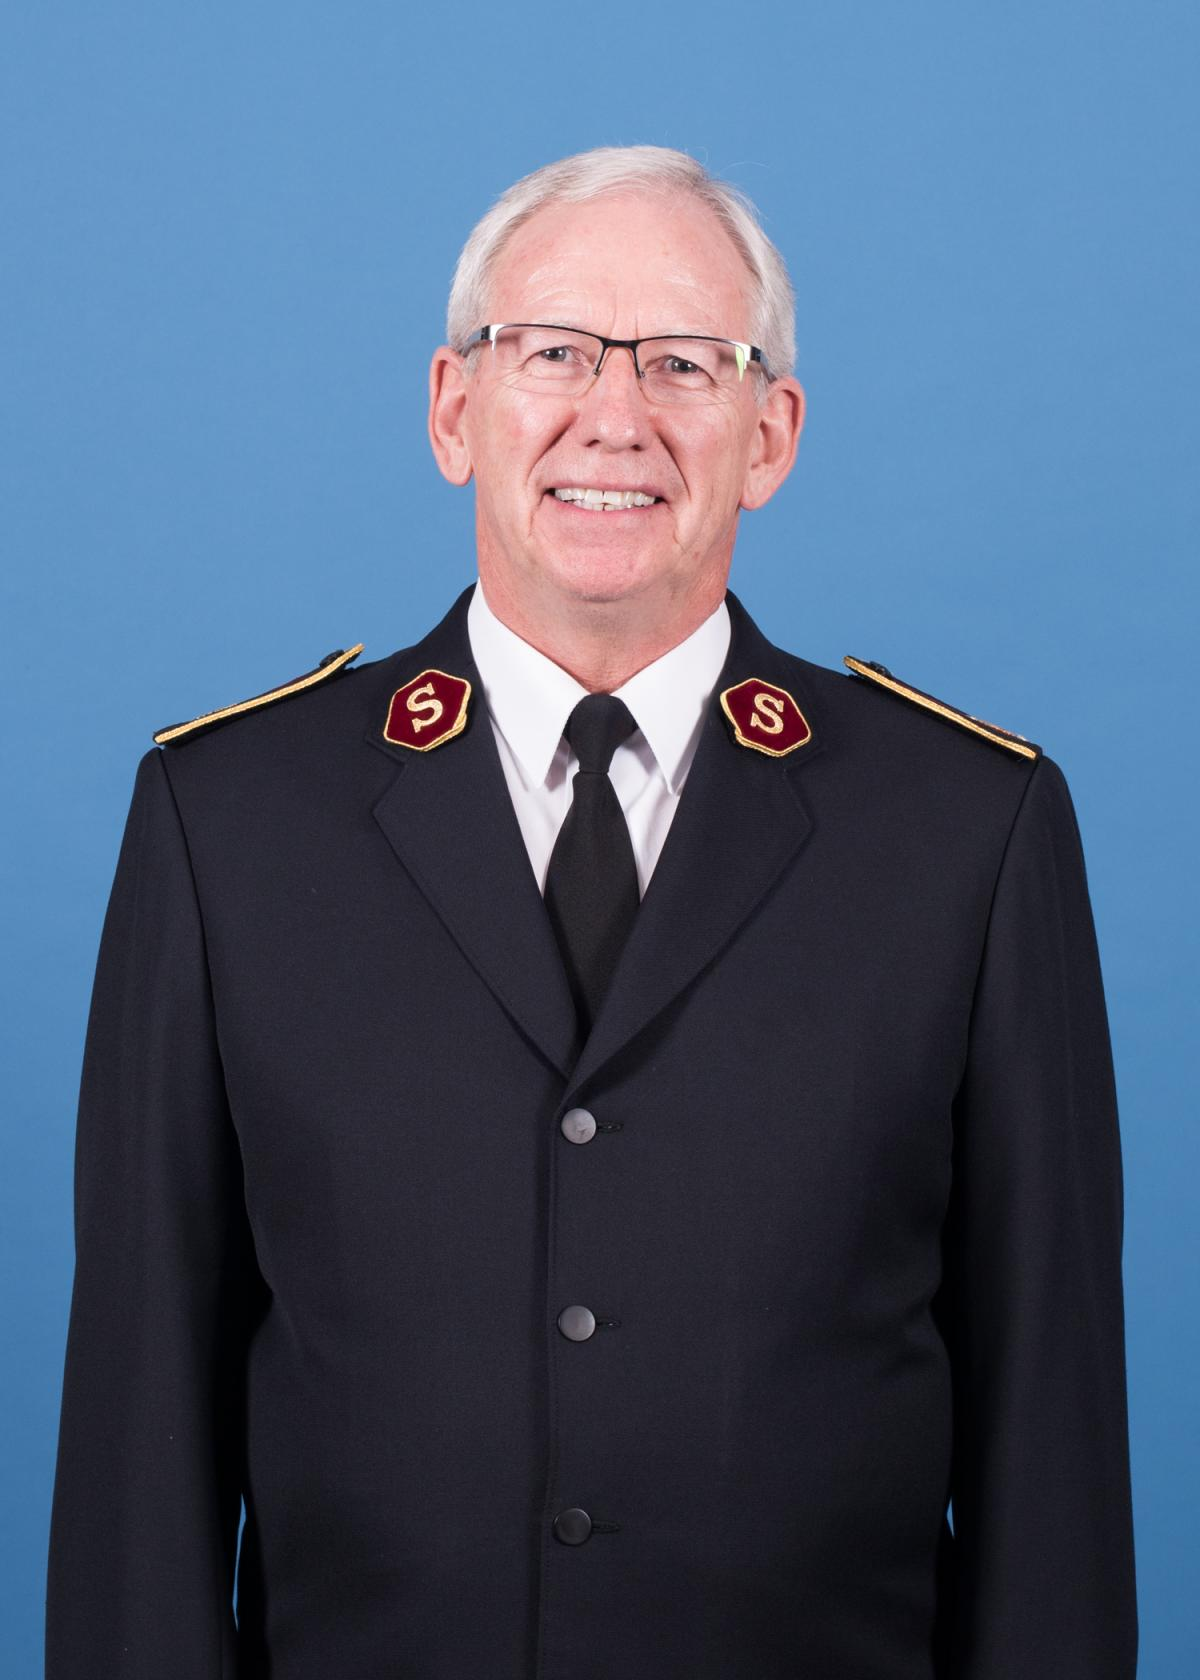 General Brian Peddle, Leiter der Internationalen Heilsarmee